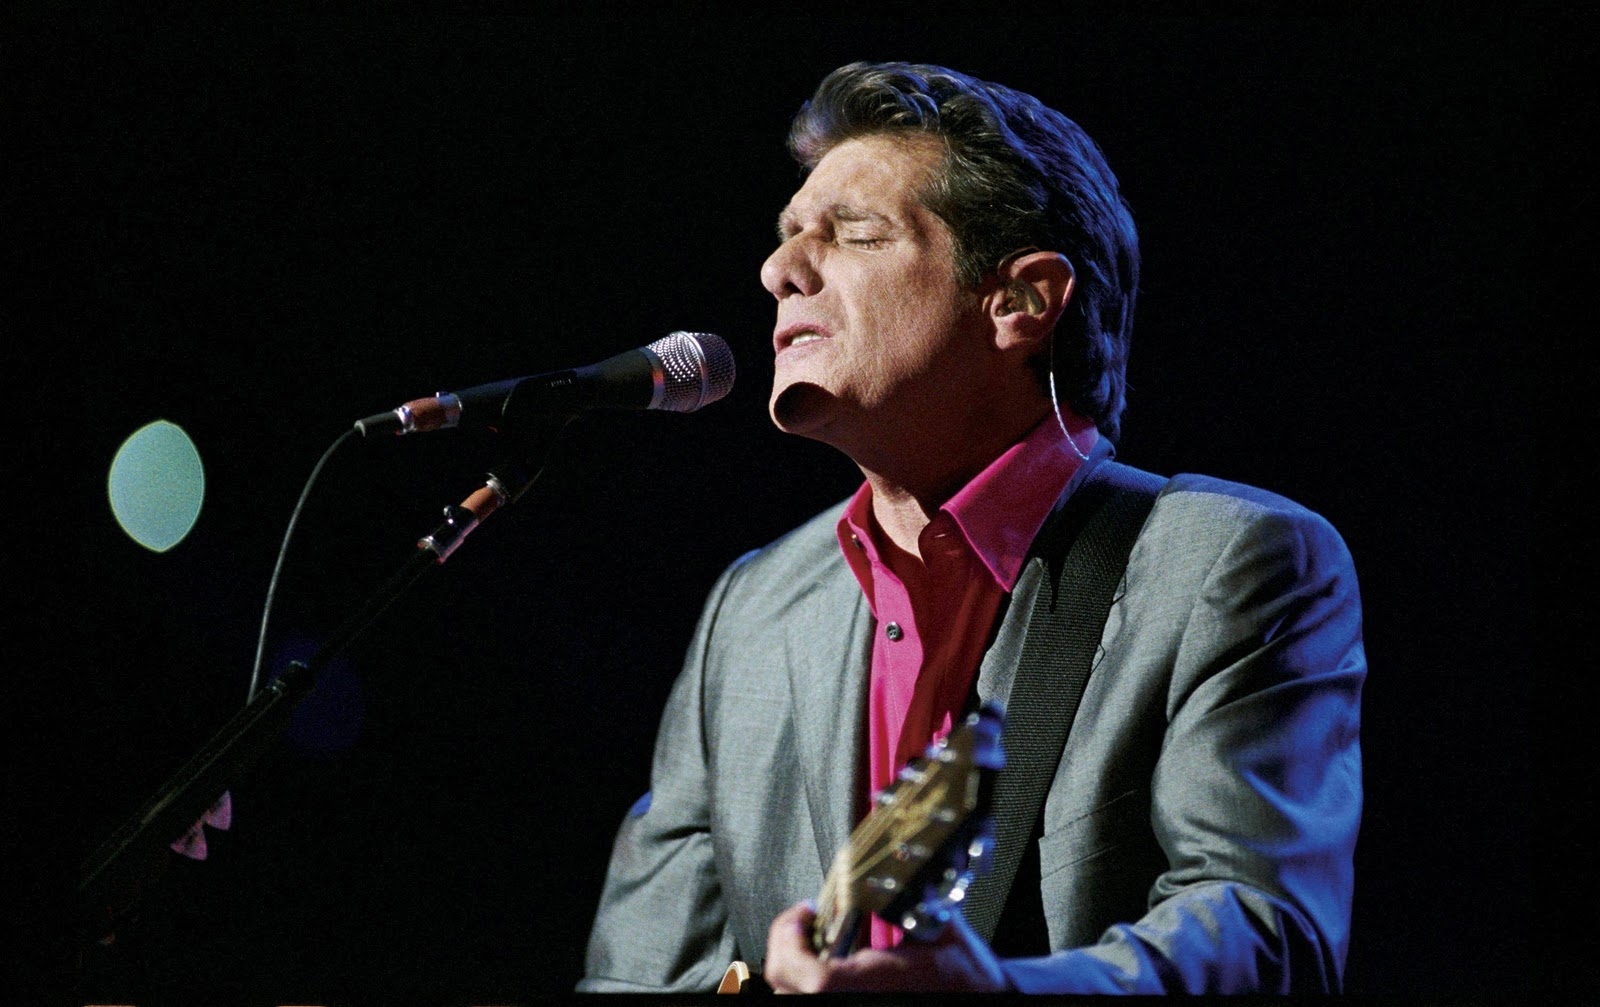 Eagles Guitarist, Glenn Frey dies at 67